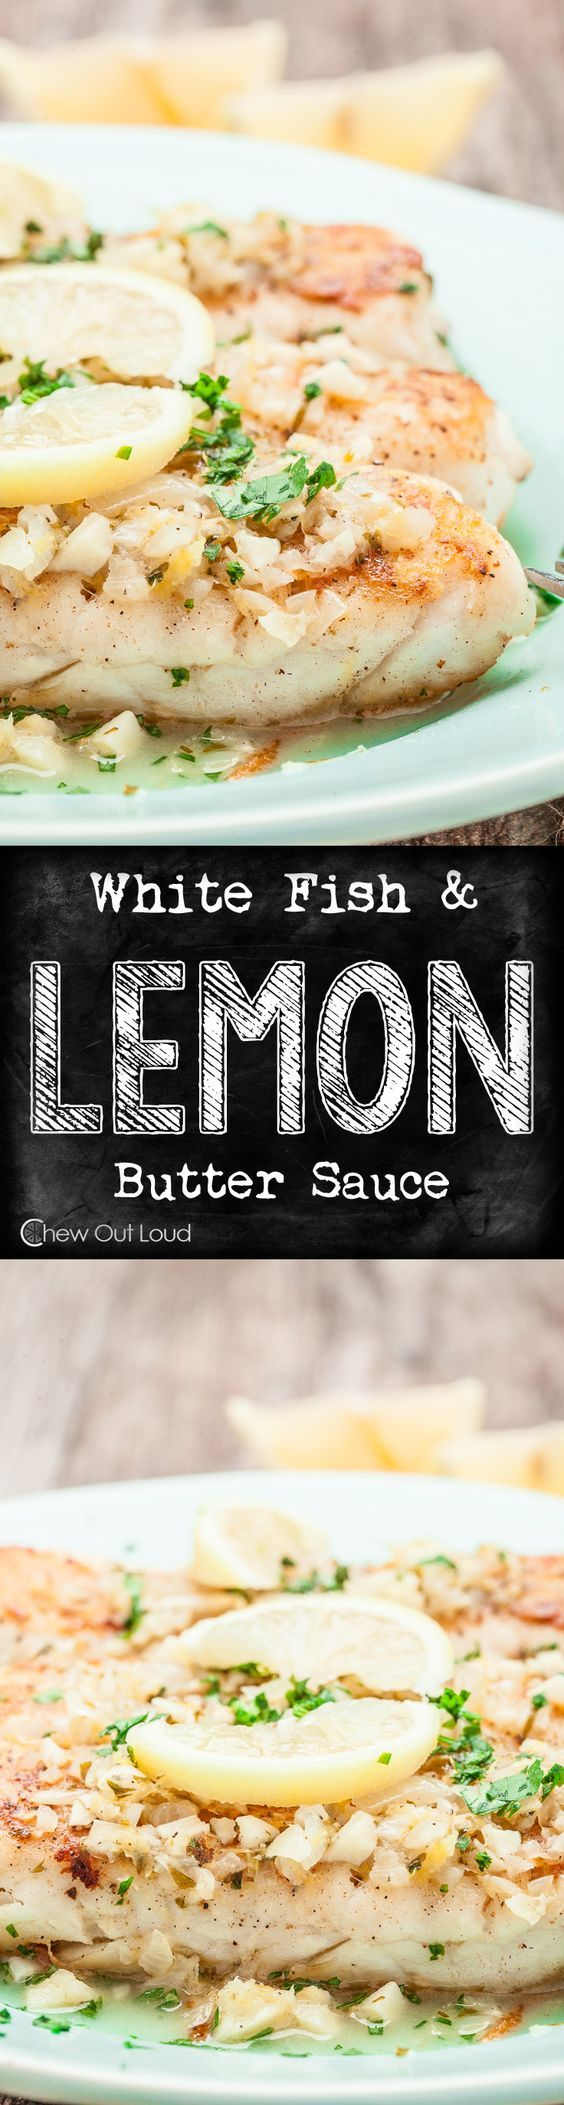 100 whiting fish recipes on pinterest crock pot corn for Lemon fish sauce recipe